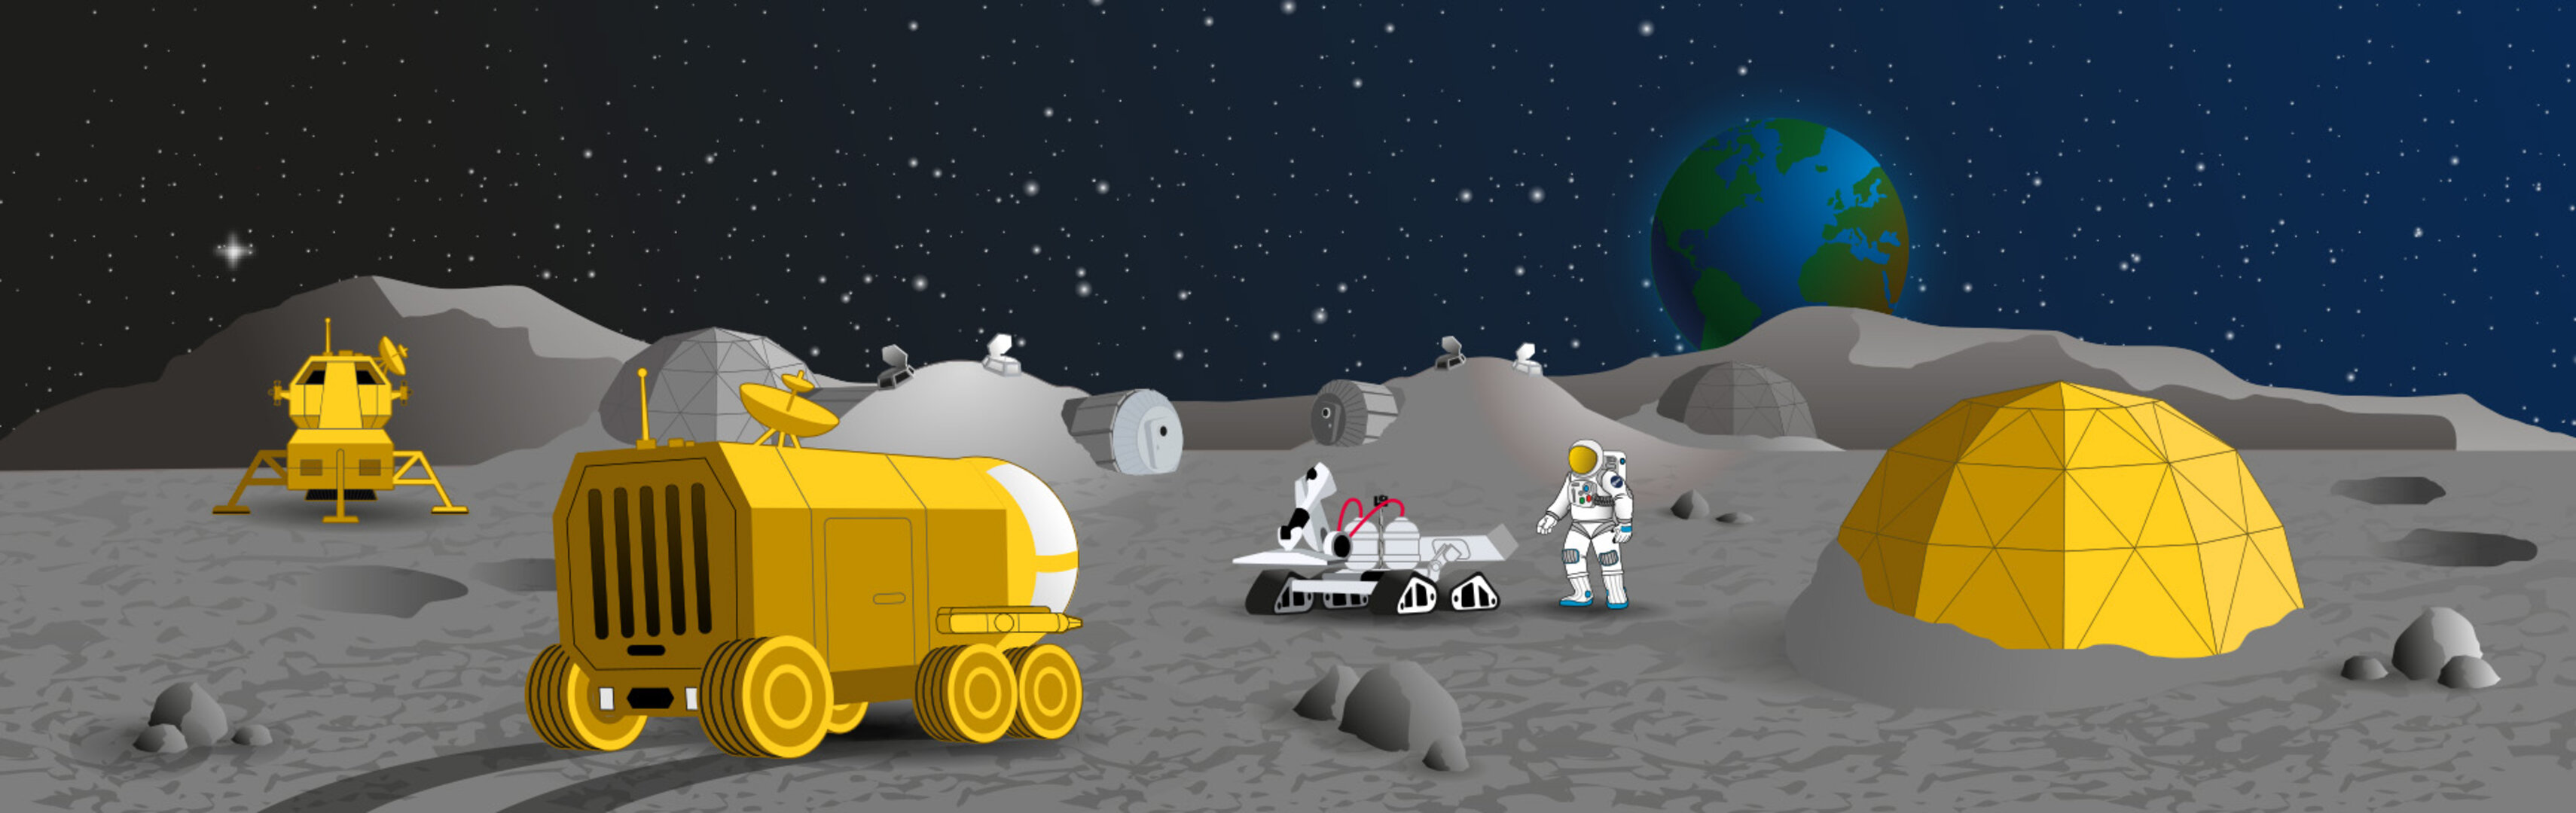 Moon Camp interactive image